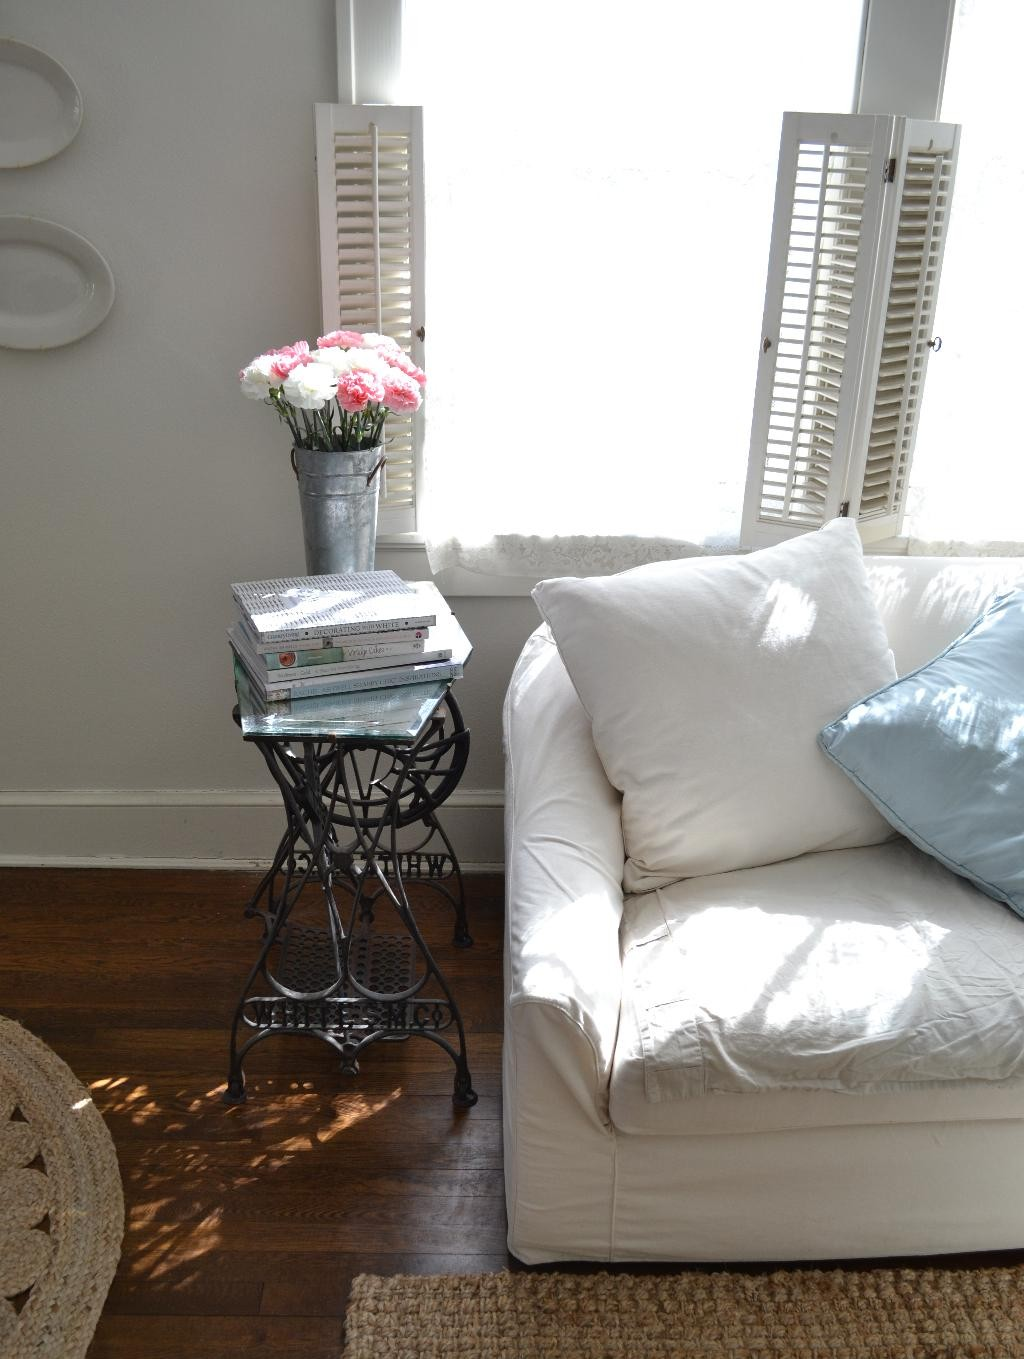 Cottage Fix - vintage sewing machine side table, white sofa, and carnations